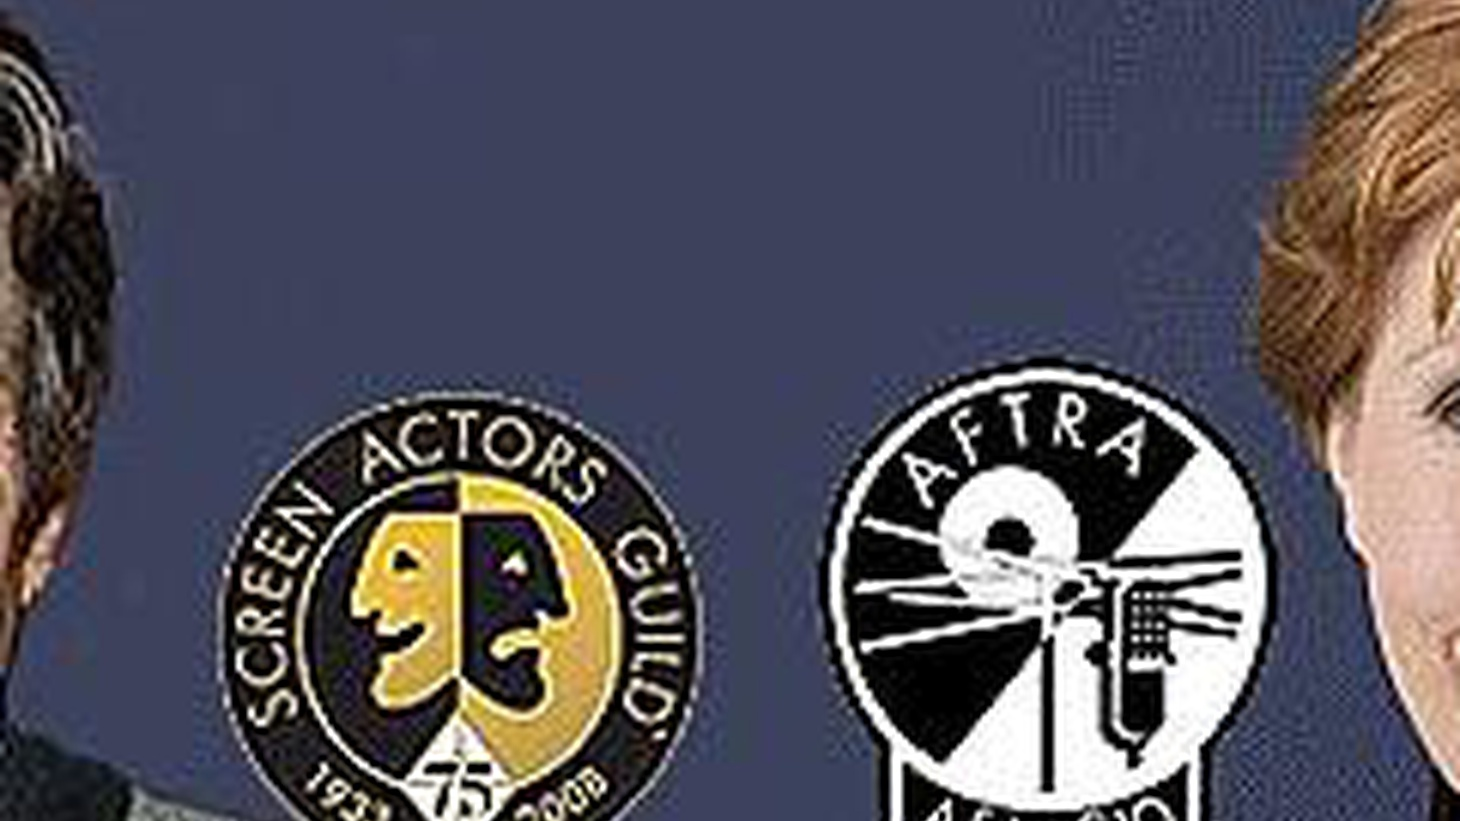 AFTRA approves their deal with producers...and SAG goes back to the negotiating table. Is peace at hand in Hollywood?